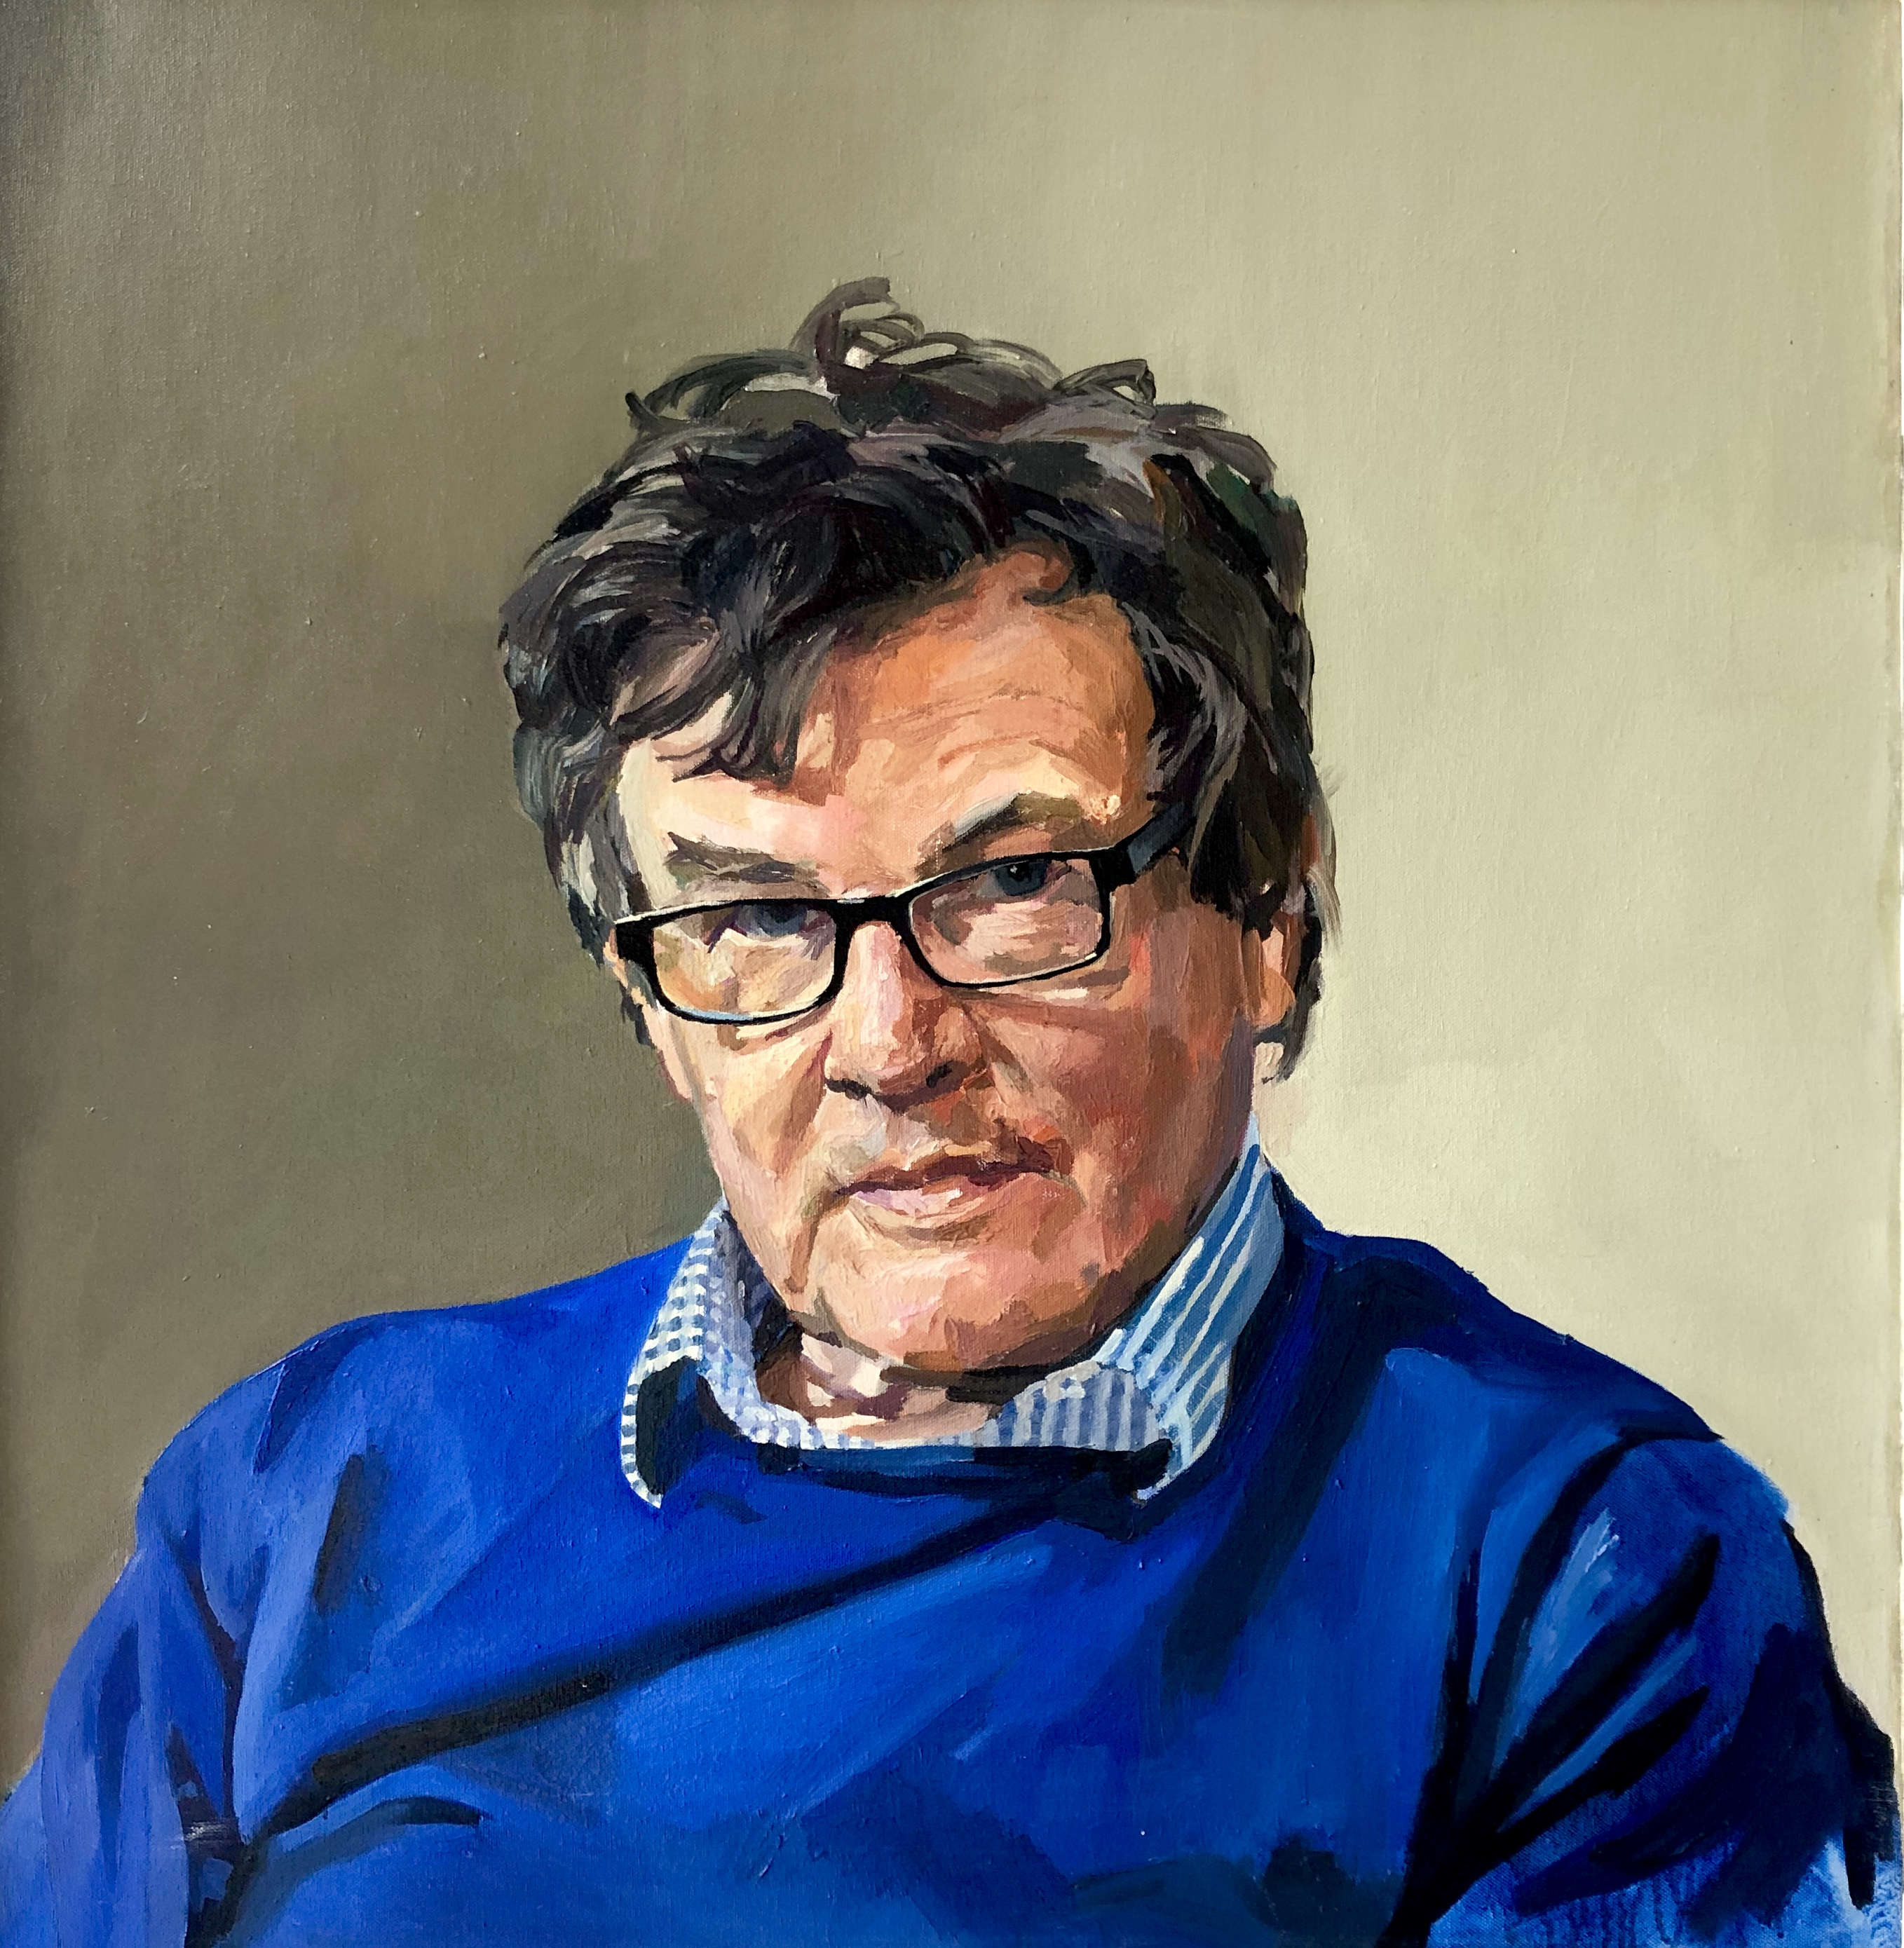 Online event with Peter Oborne: 'The Assault on Truth.' Tuesday, May 11th 2021, 19:30 -20:45